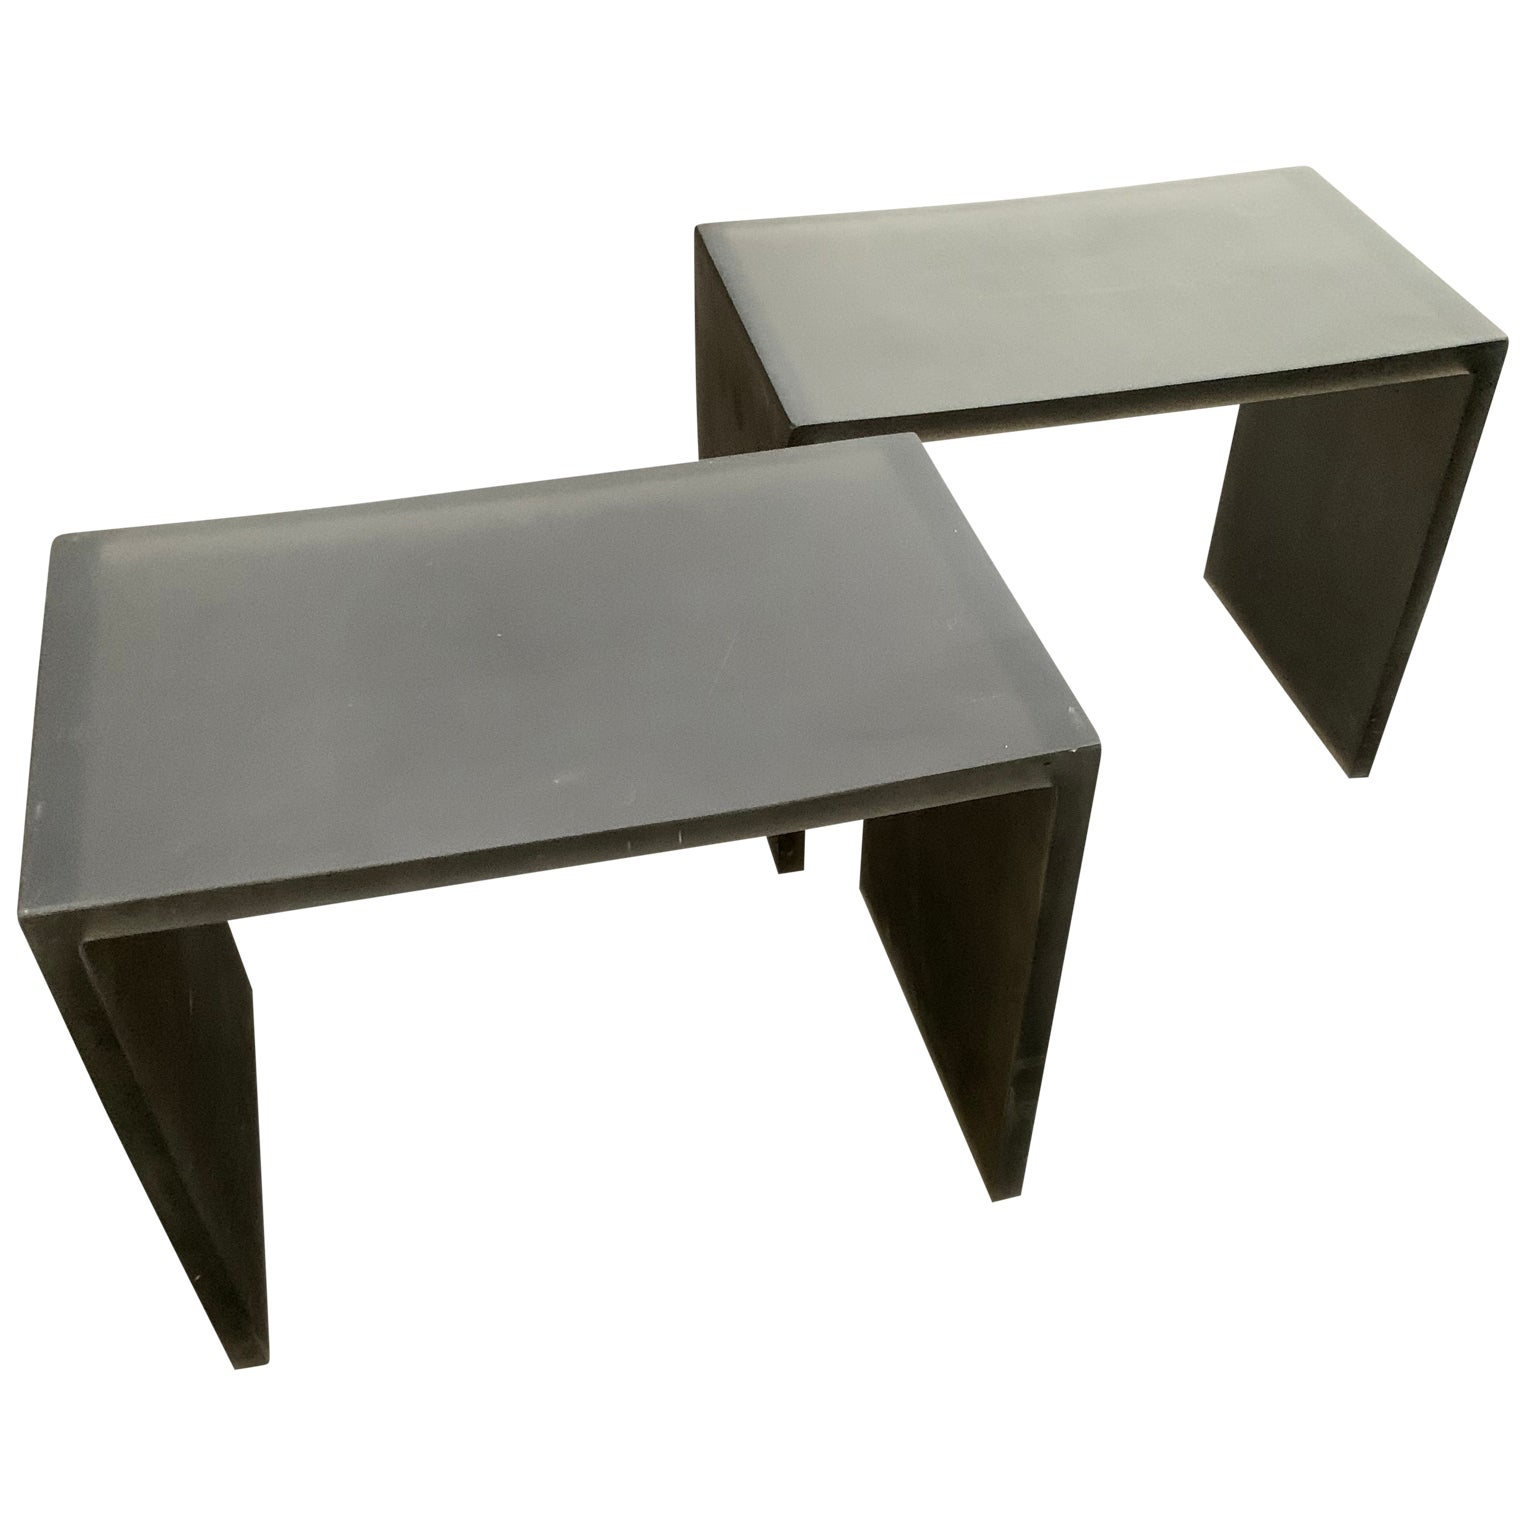 Pair of Mid-Century Modern Black Frosted Lucite Side Tables or Benches